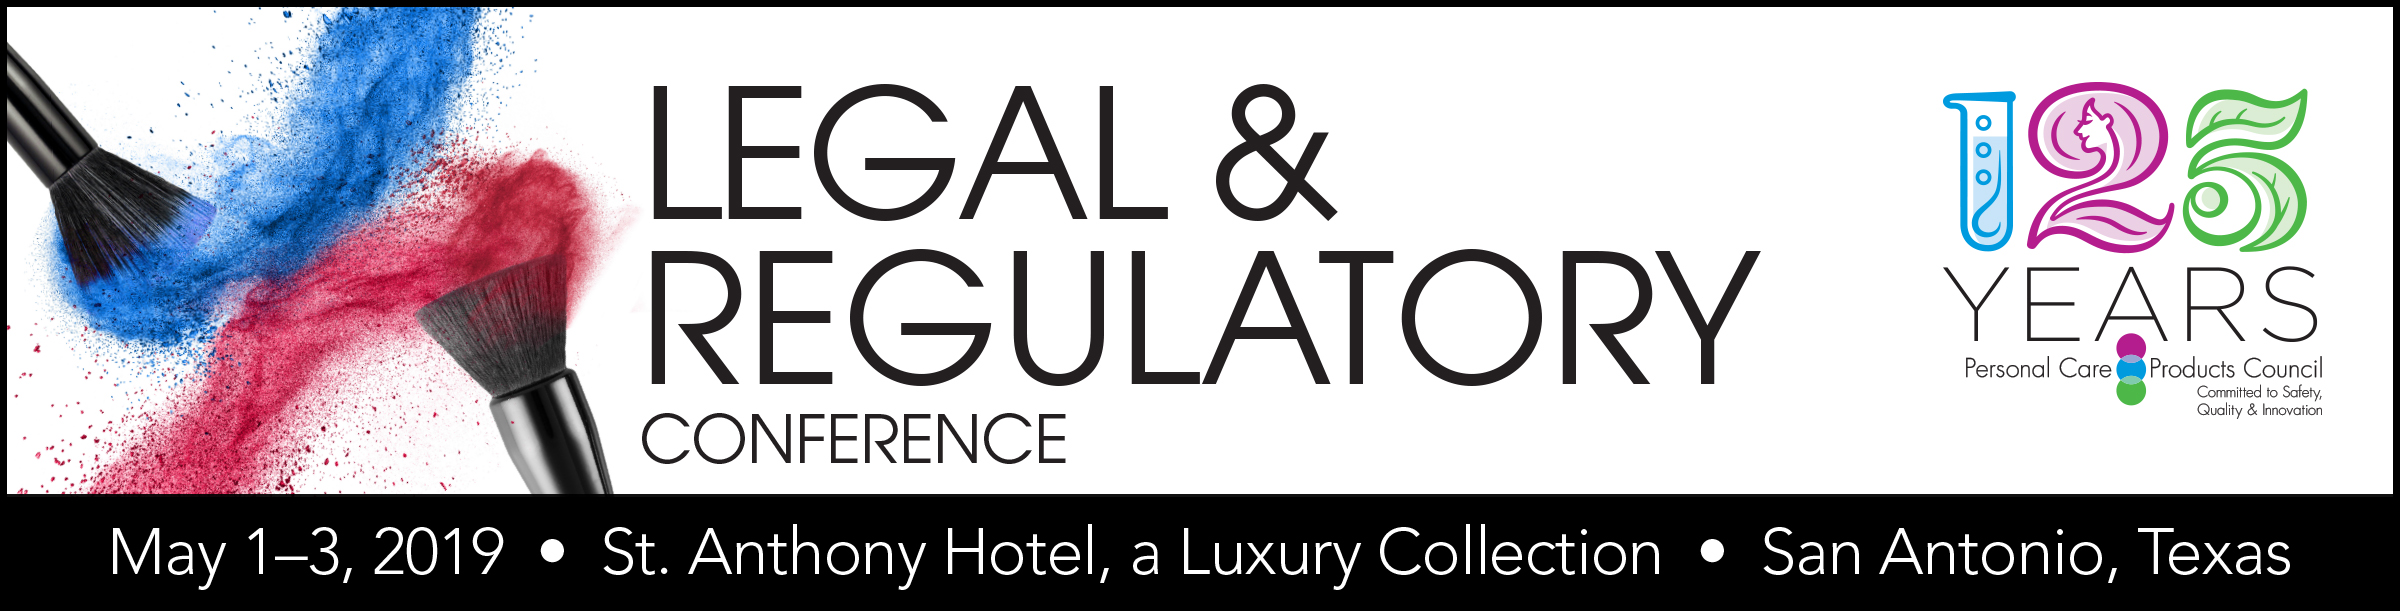 Legal and Regulatory Conference